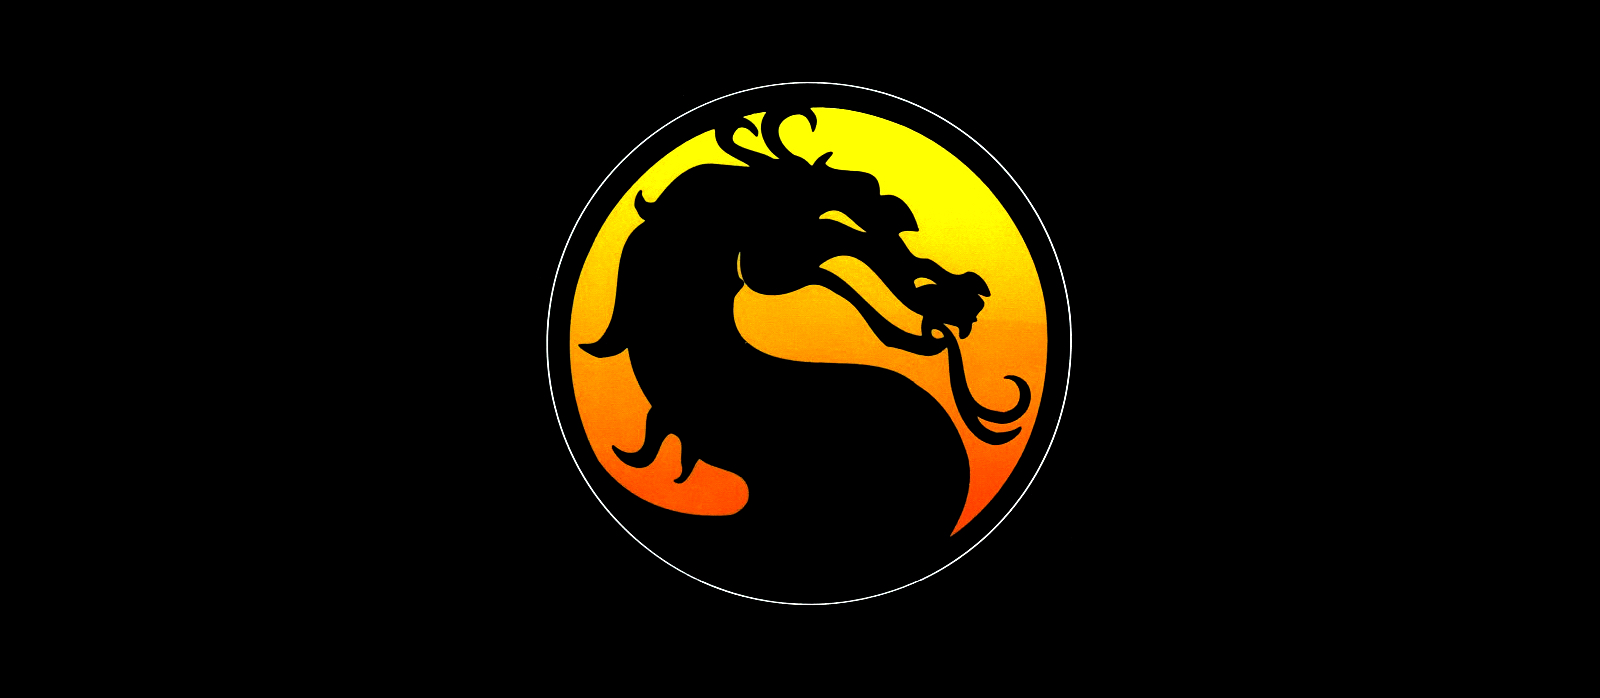 A dragon logo from Mortal Kombat 1 appears on a black background